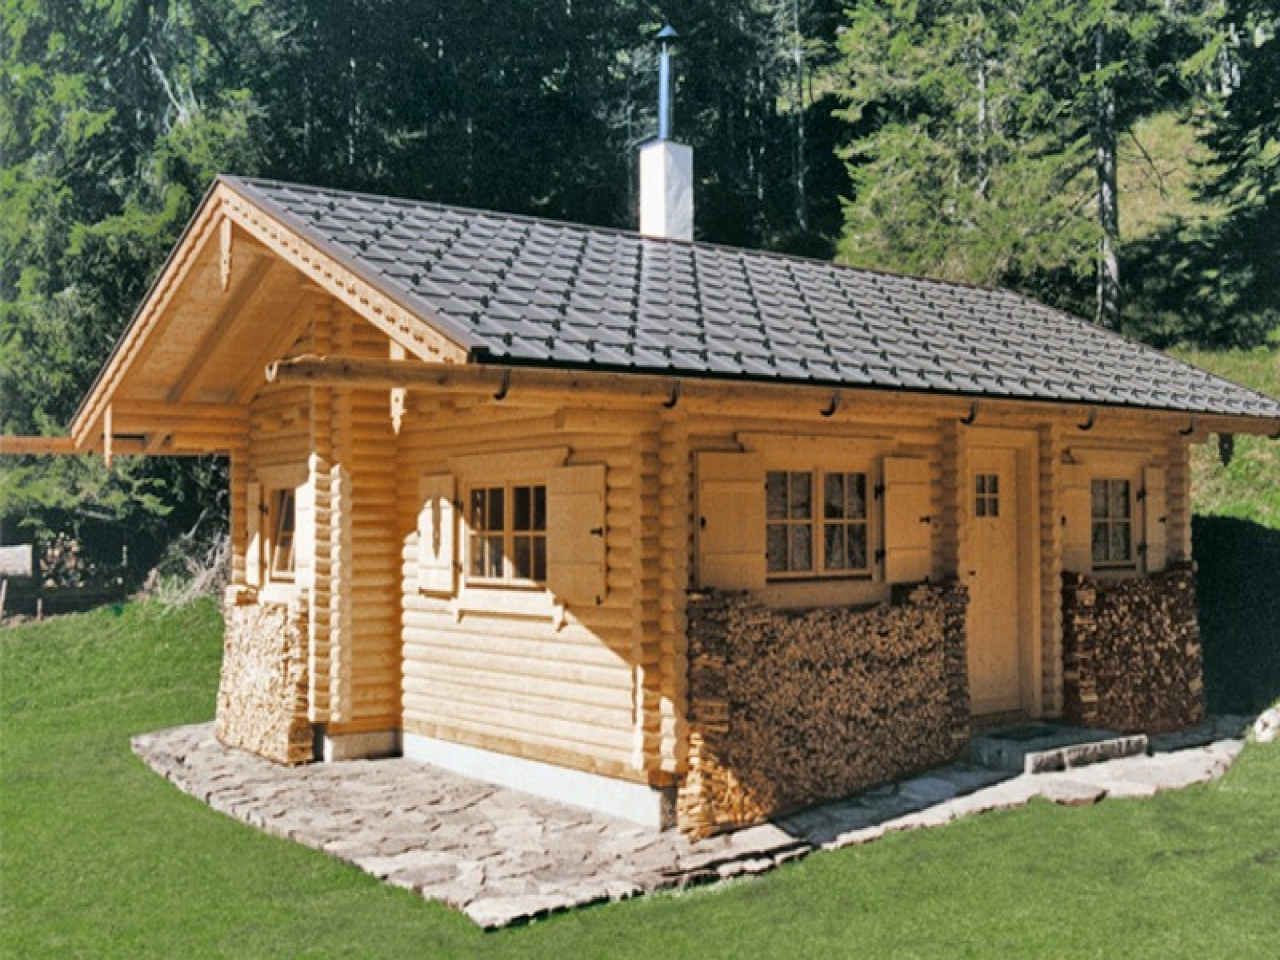 Hunting cabin plans inexpensive small cabin plans hunting for Small hunting cabin designs